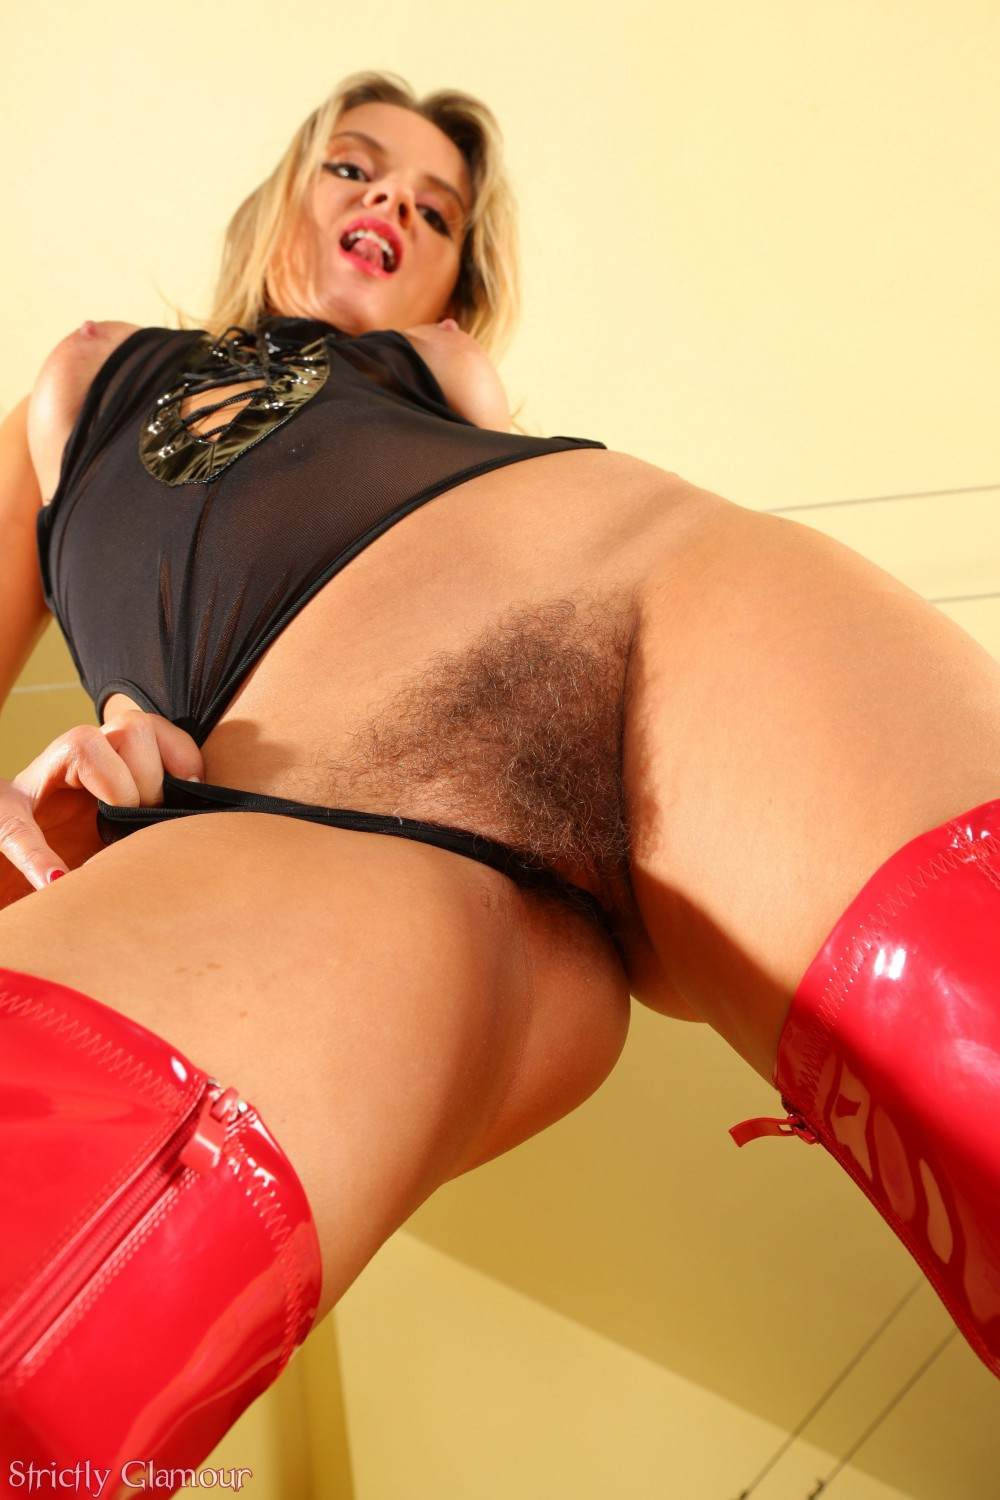 Picture #10 of Become submissive to obey the blond mistress and maybe she will let you sniff her hairy pussy afterwards